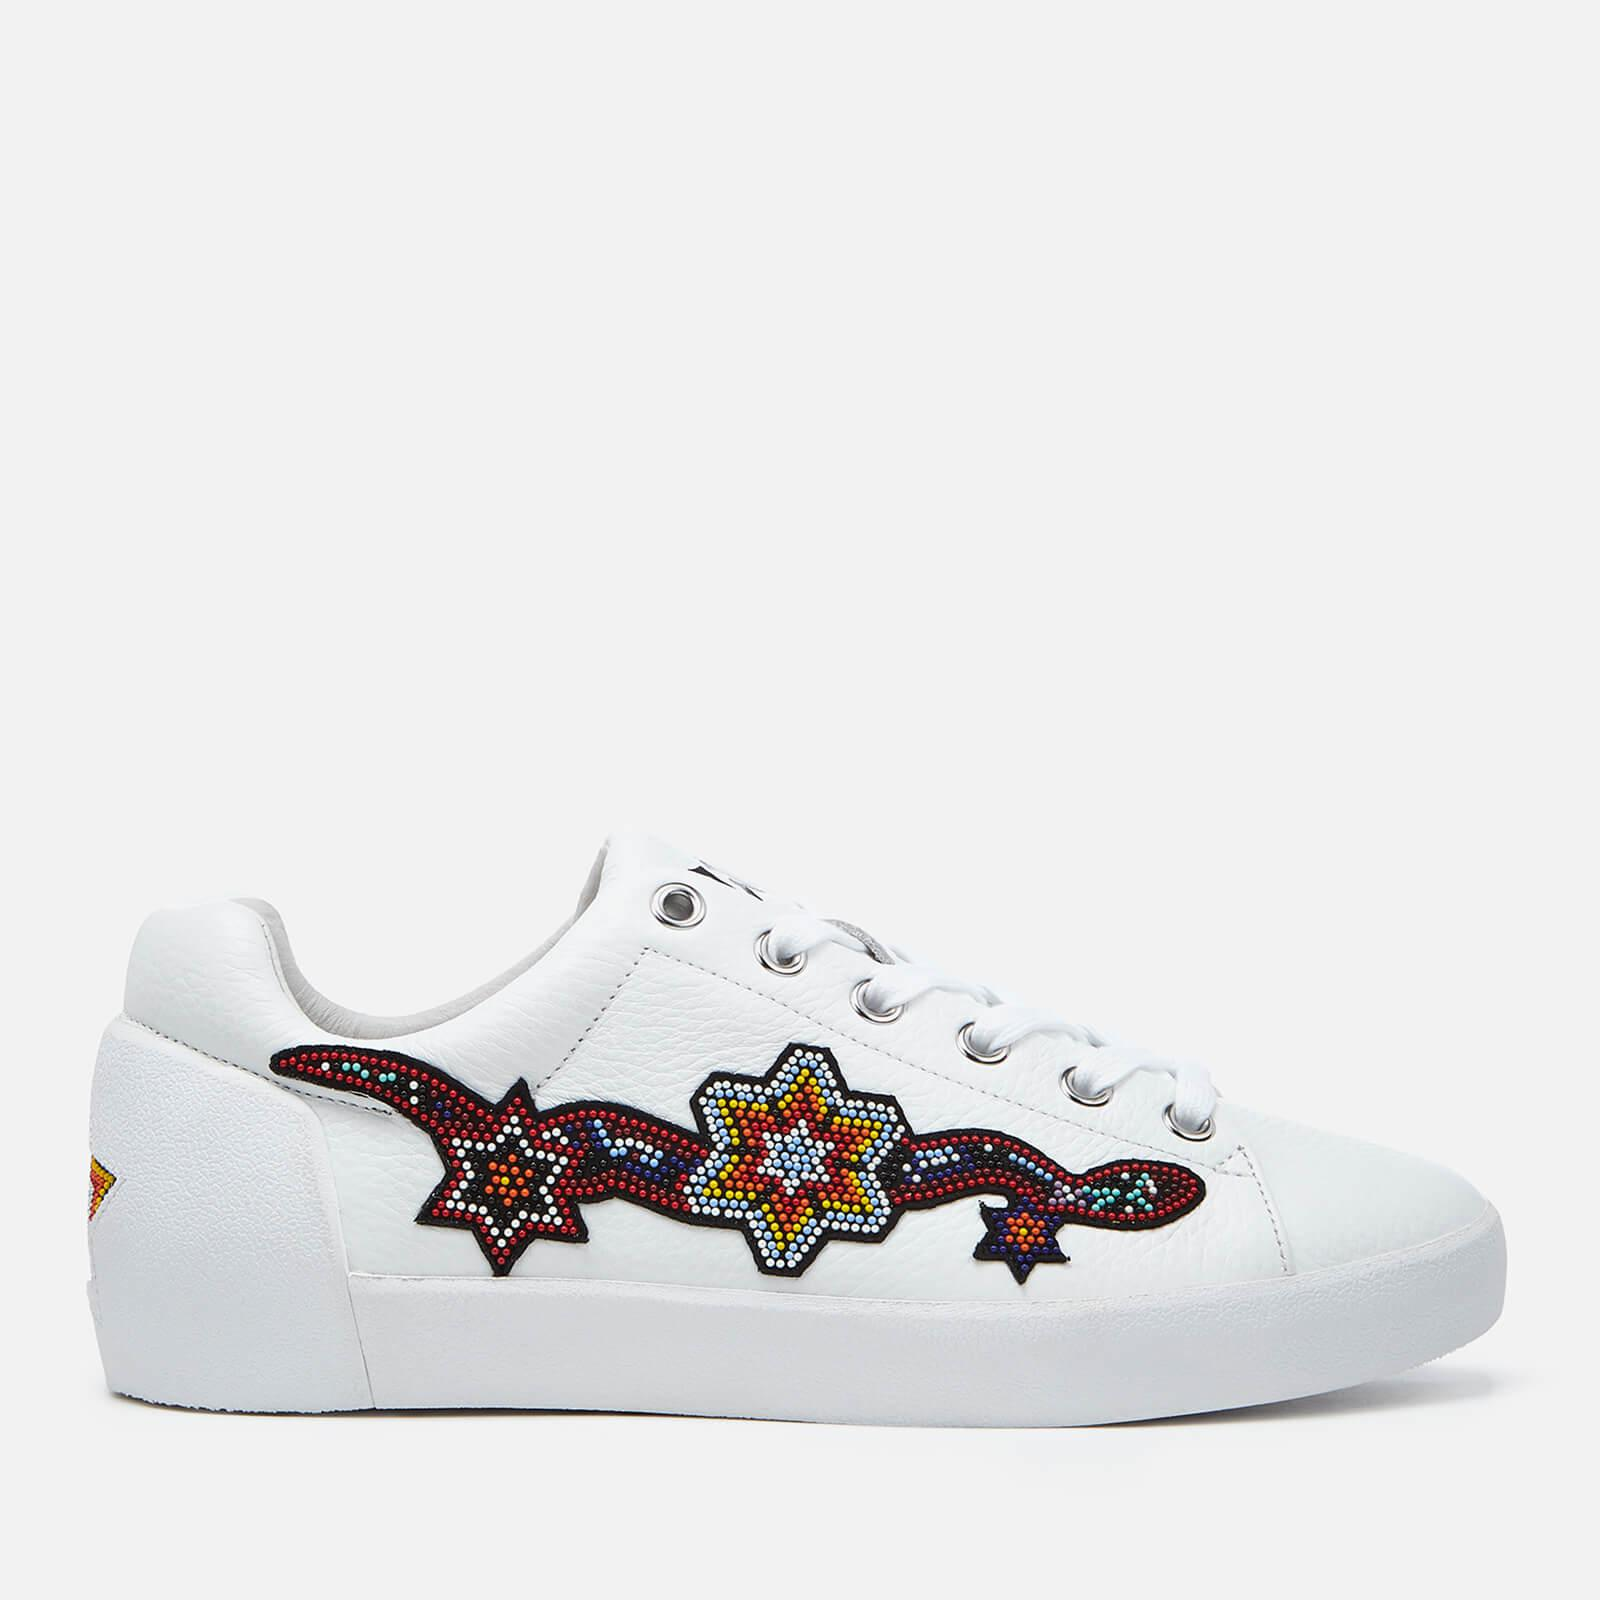 Ash Women's Namaste Tumble Leather Low Top Trainers Sneakernews Cheap Online Best Place Online Latest Discount Low Shipping Online Cheap 6pAF2zOi